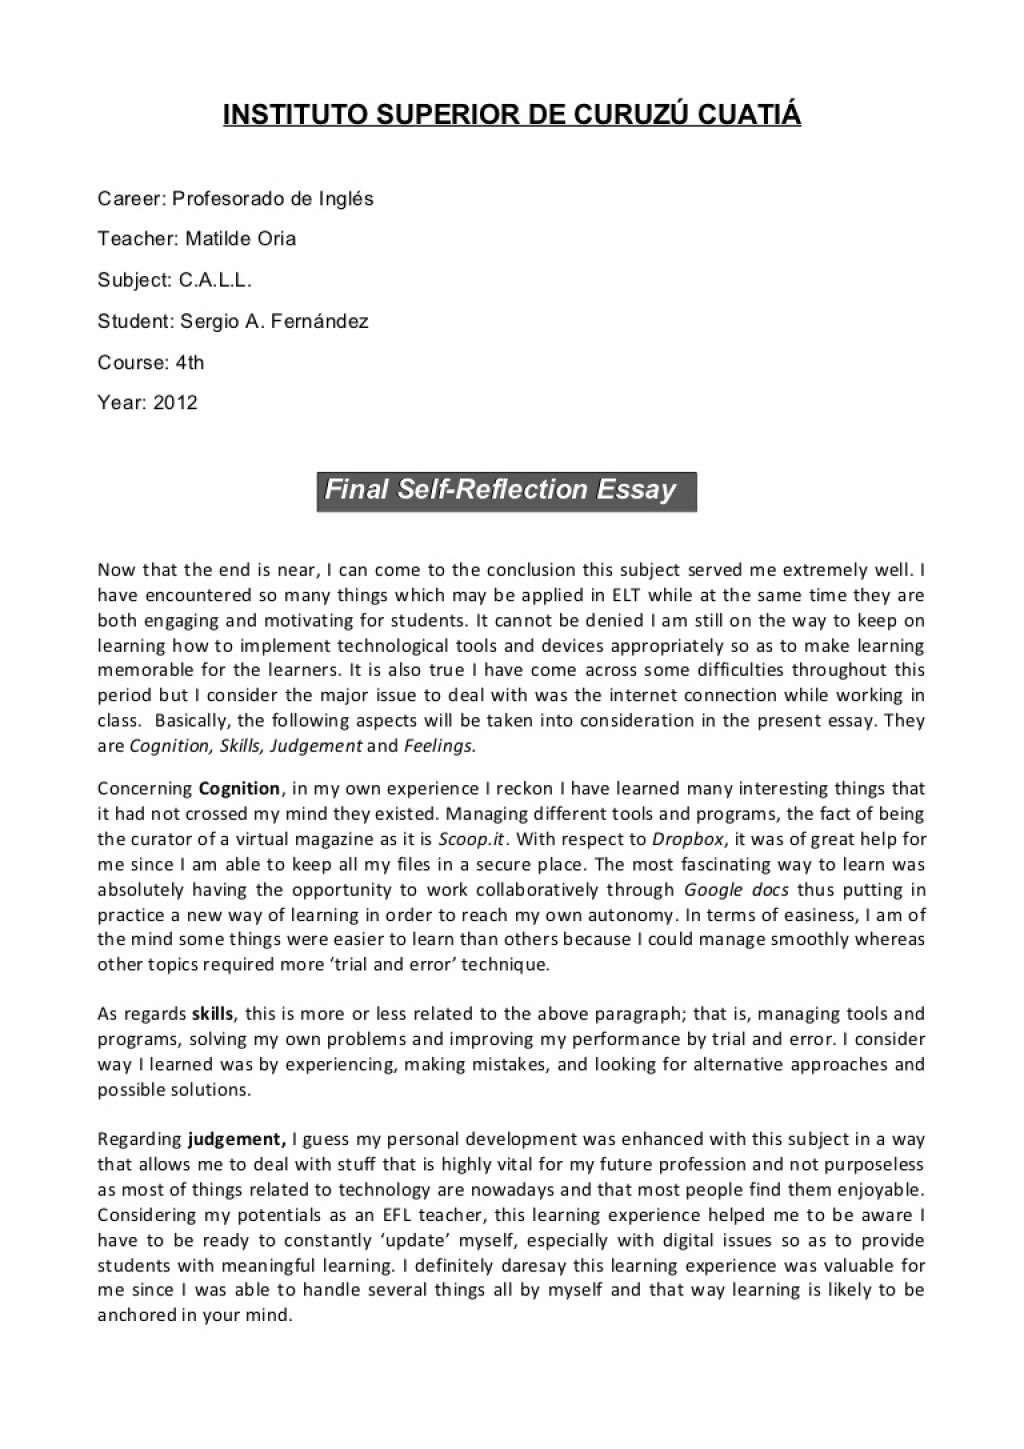 011 Essay Example How To Write Reflection Sergio Finalself Reflectionessay Phpapp01 Thumbnail Awesome A Reflective Introduction On An Article Course Large